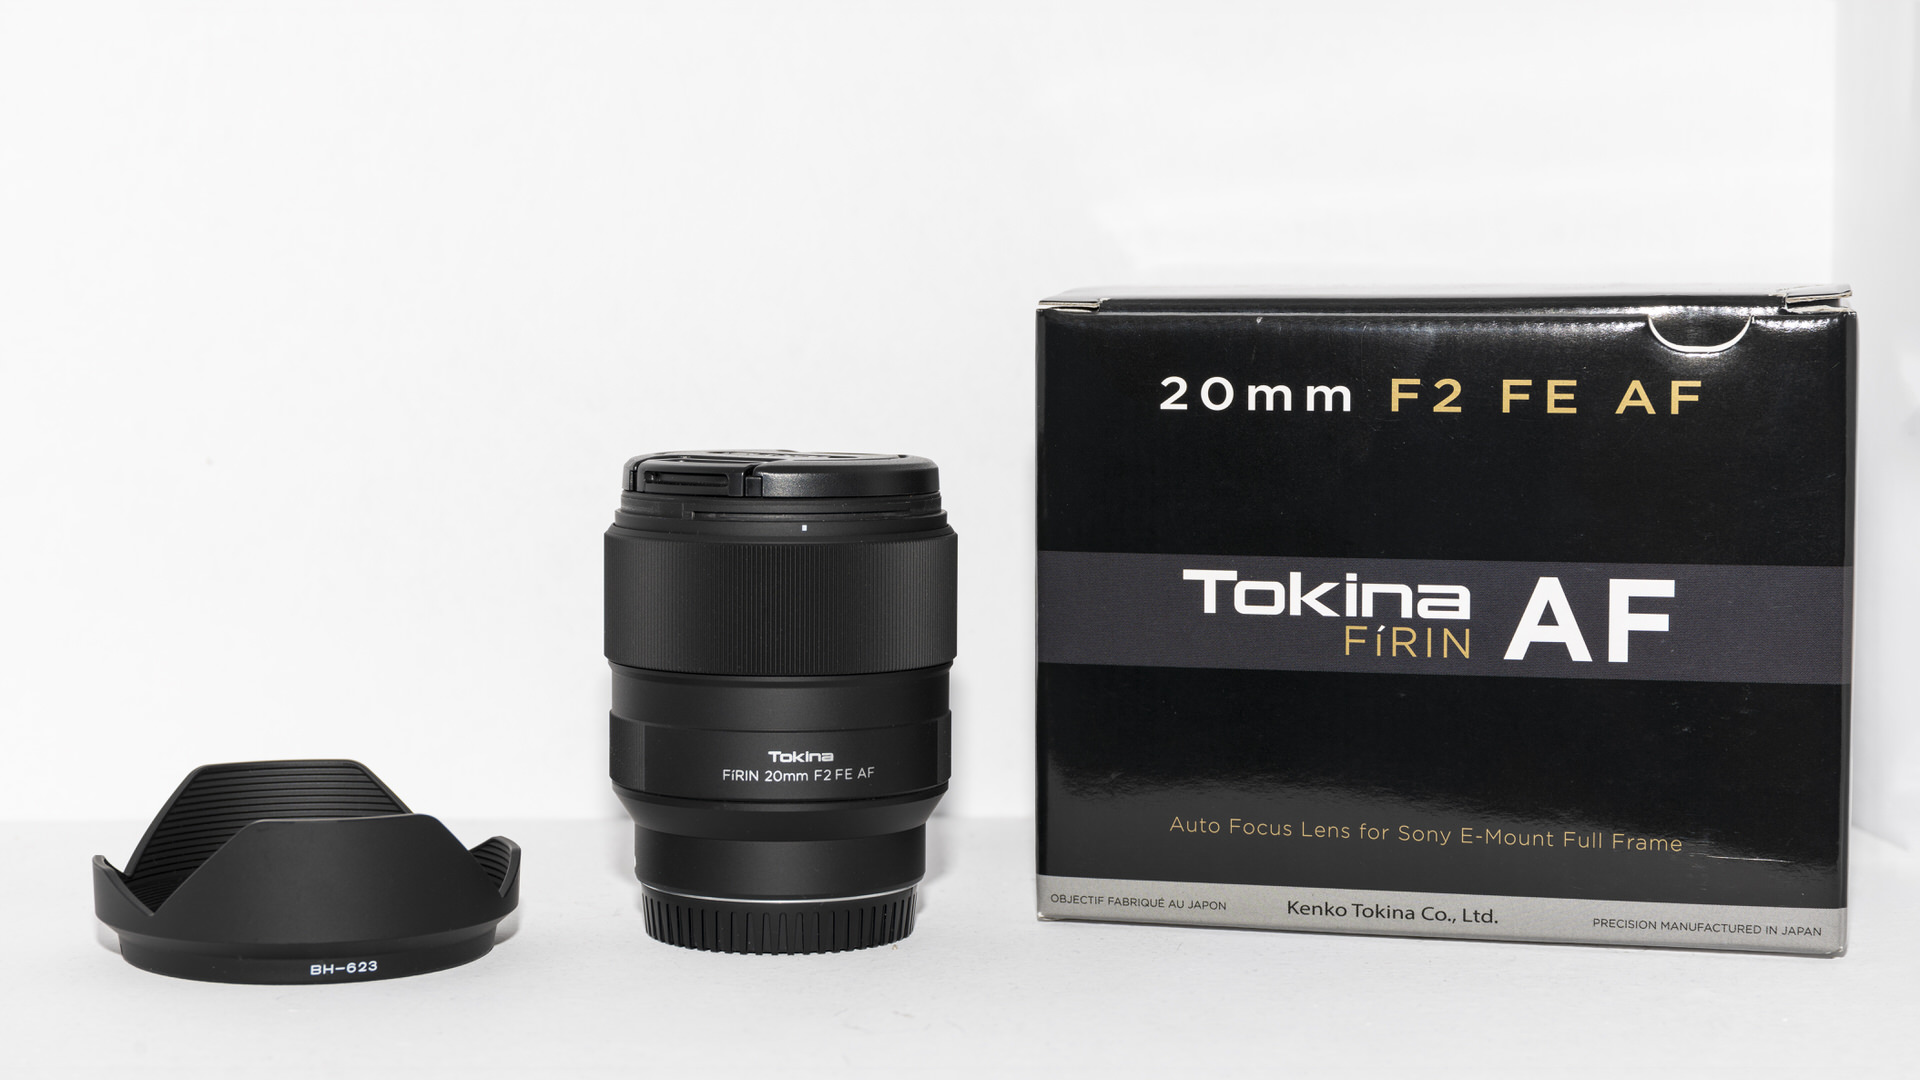 Tokina Firin 20mm F/2 AF Review - Christophe Anagnostopoulos